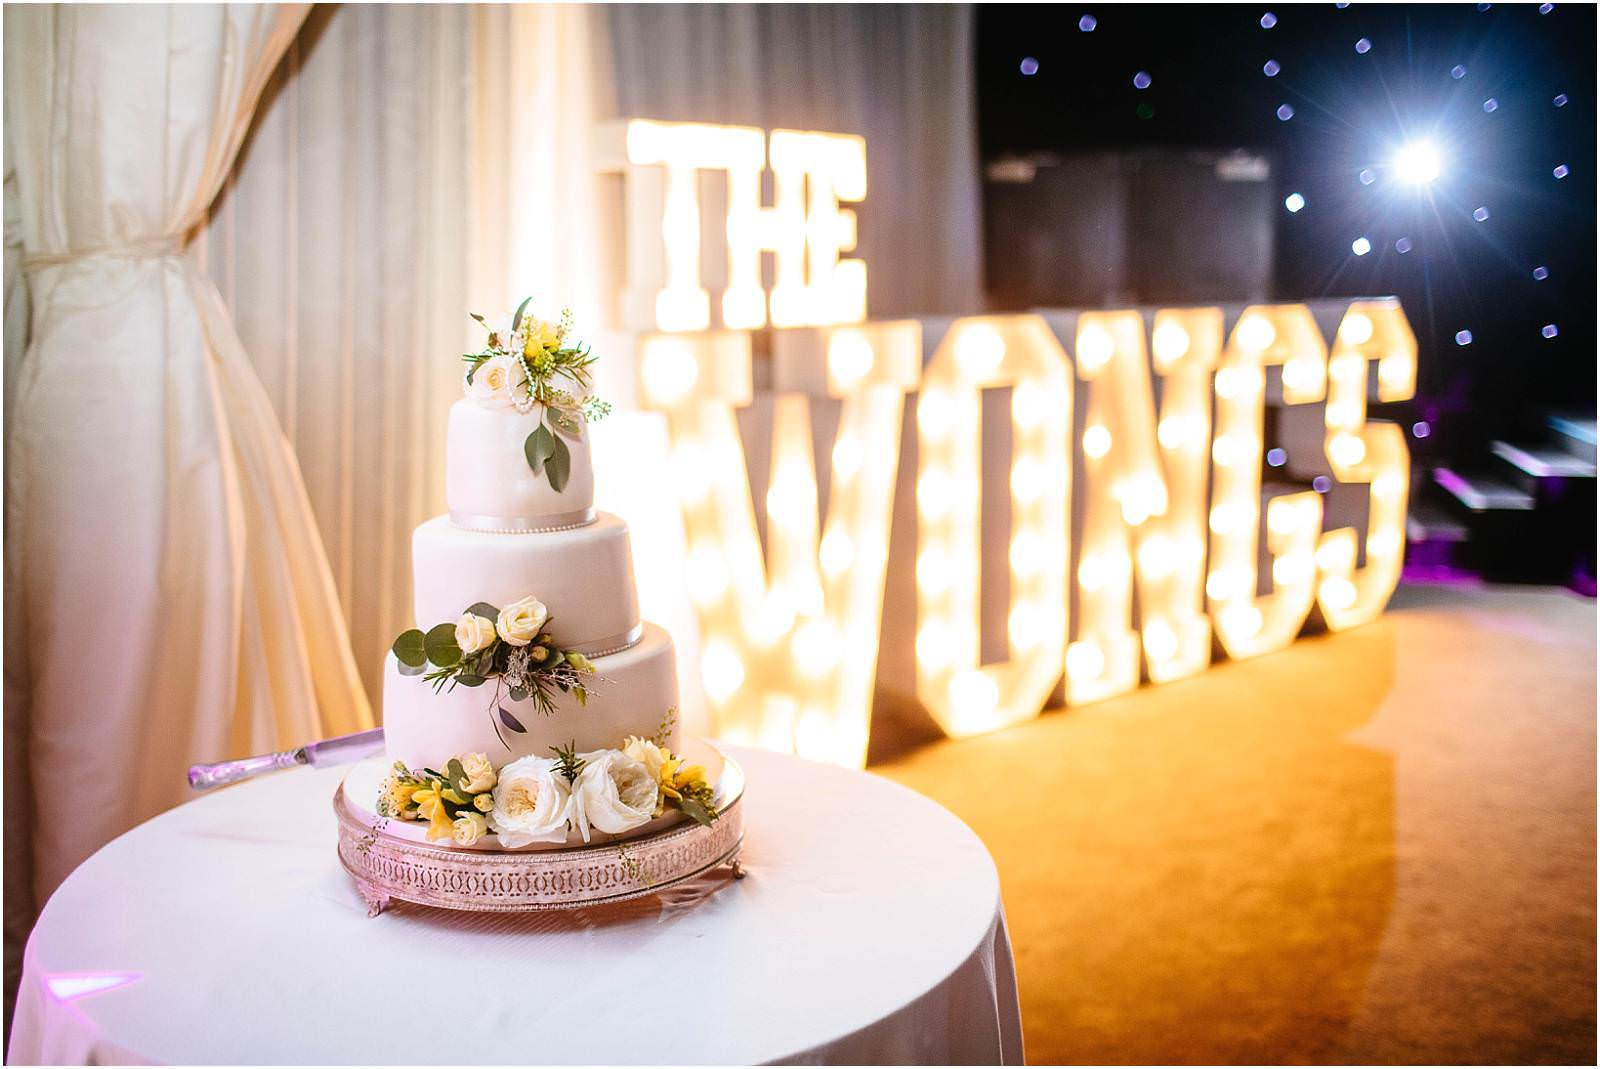 wedding cake and light up letters